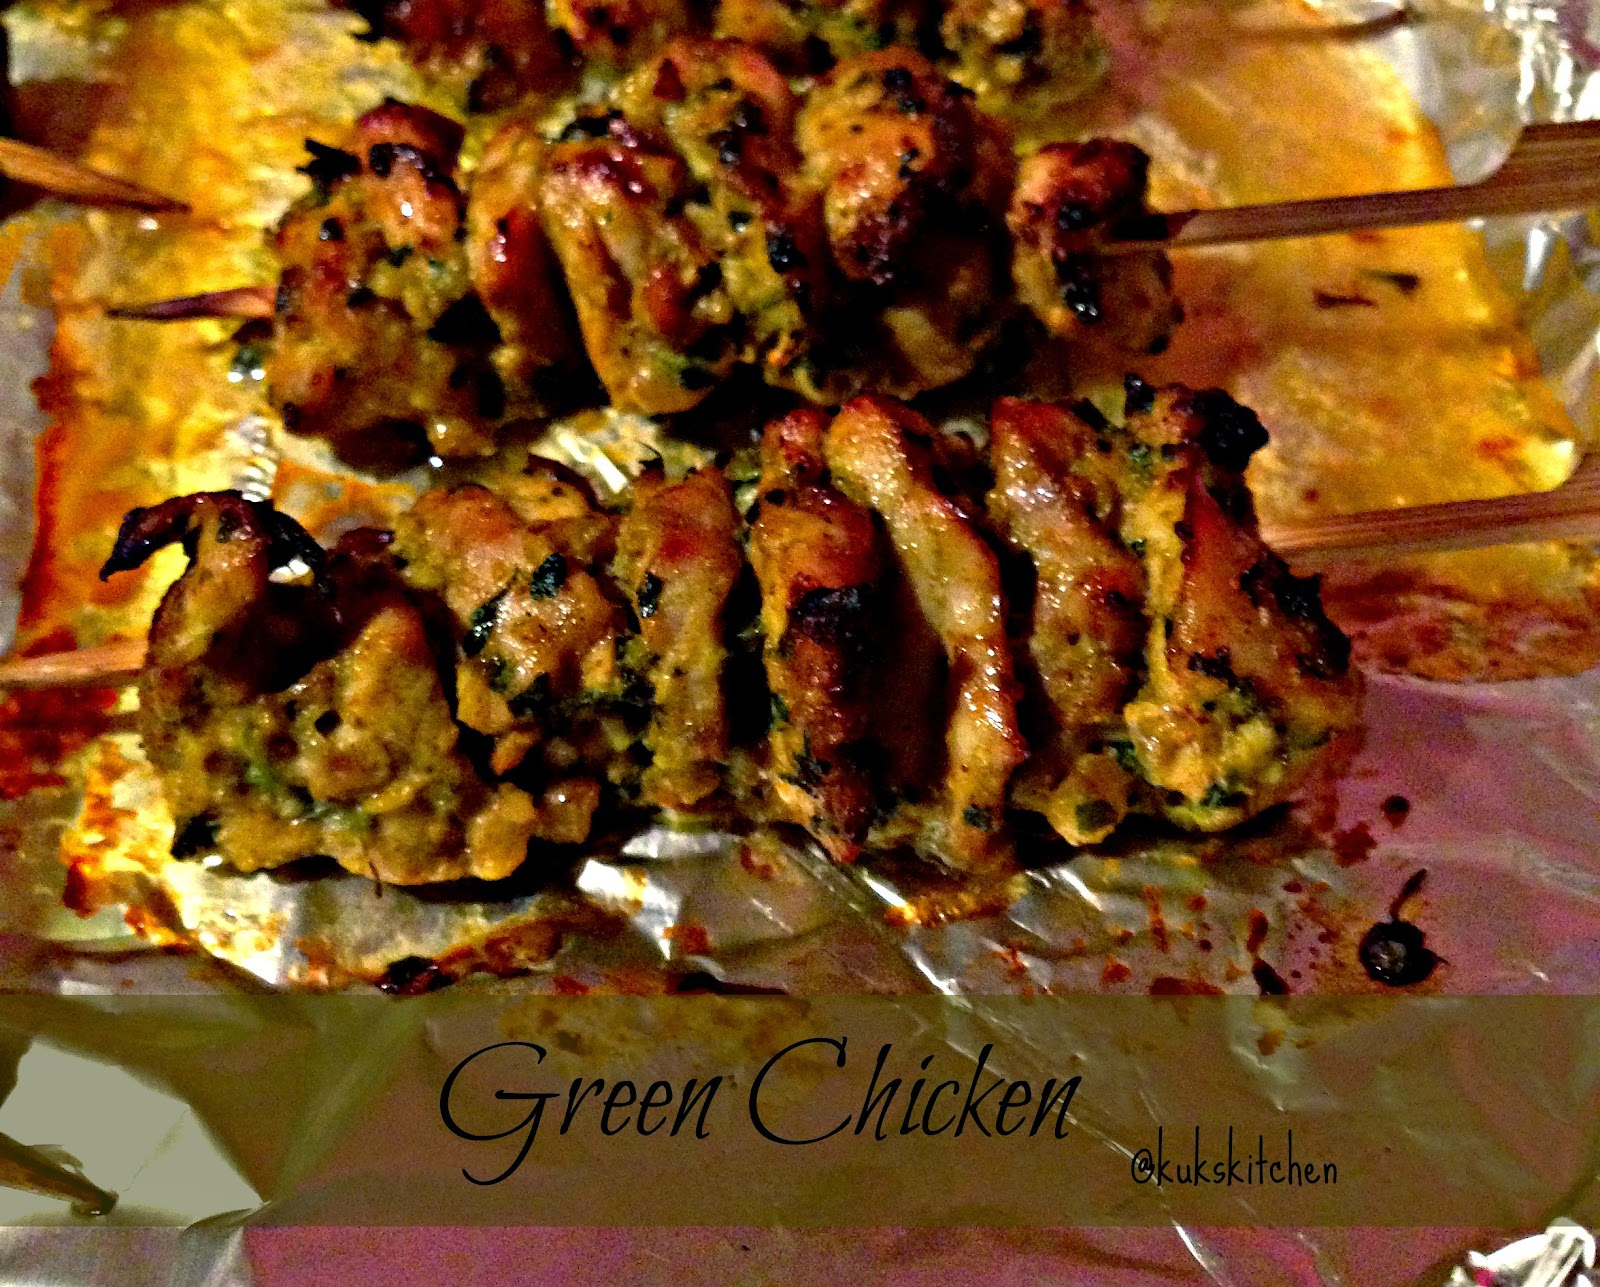 Green chicken Kebab | Kukskitchen